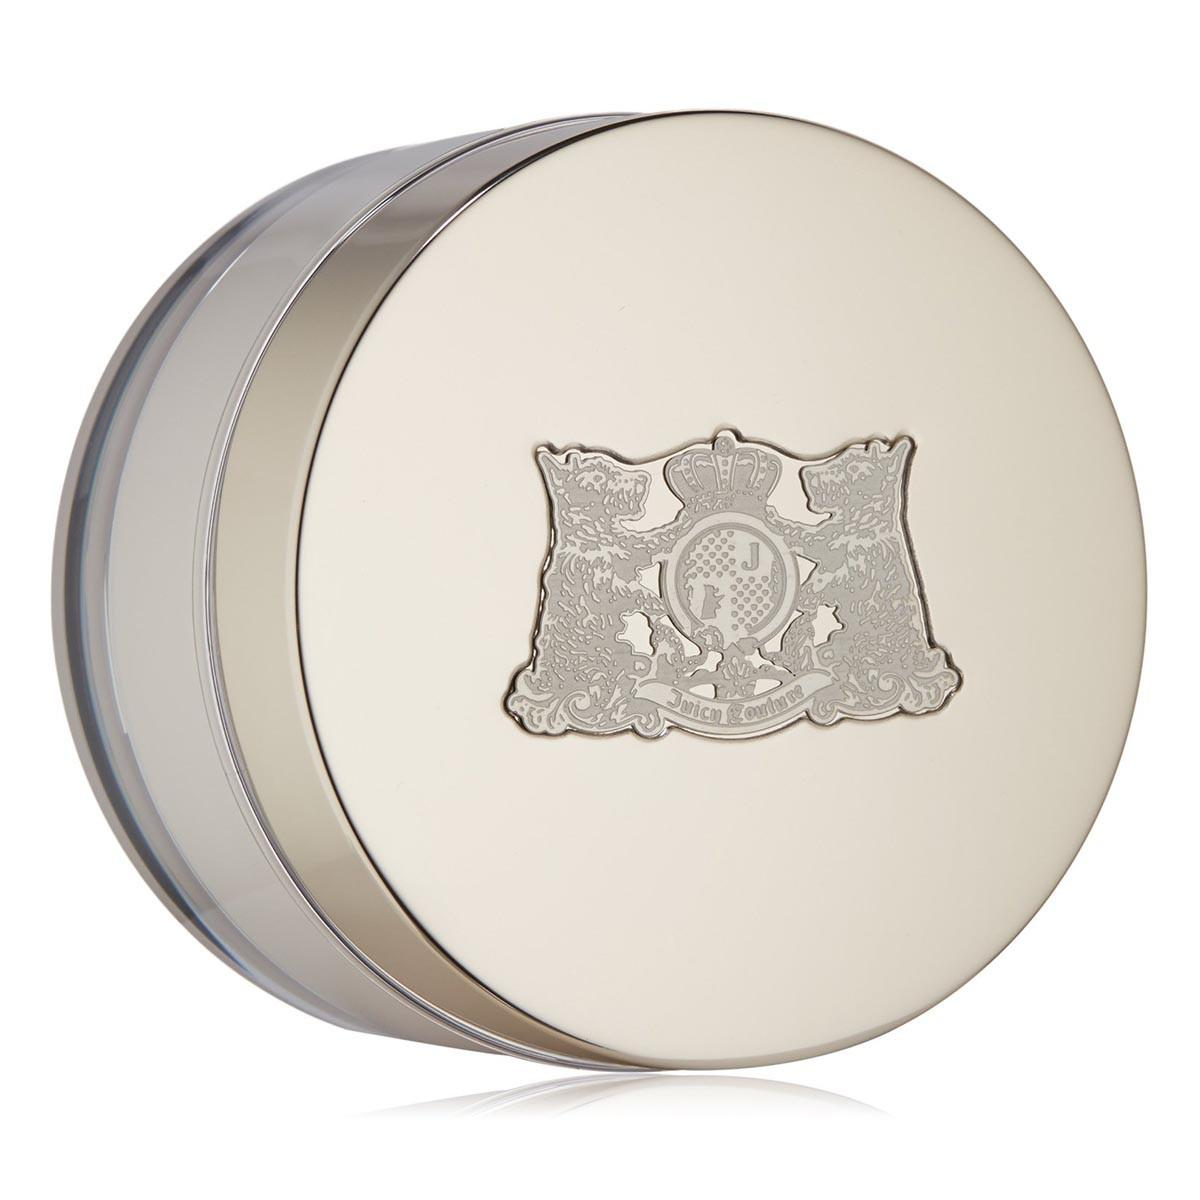 Juicy couture Royal Body Cream 200 ml